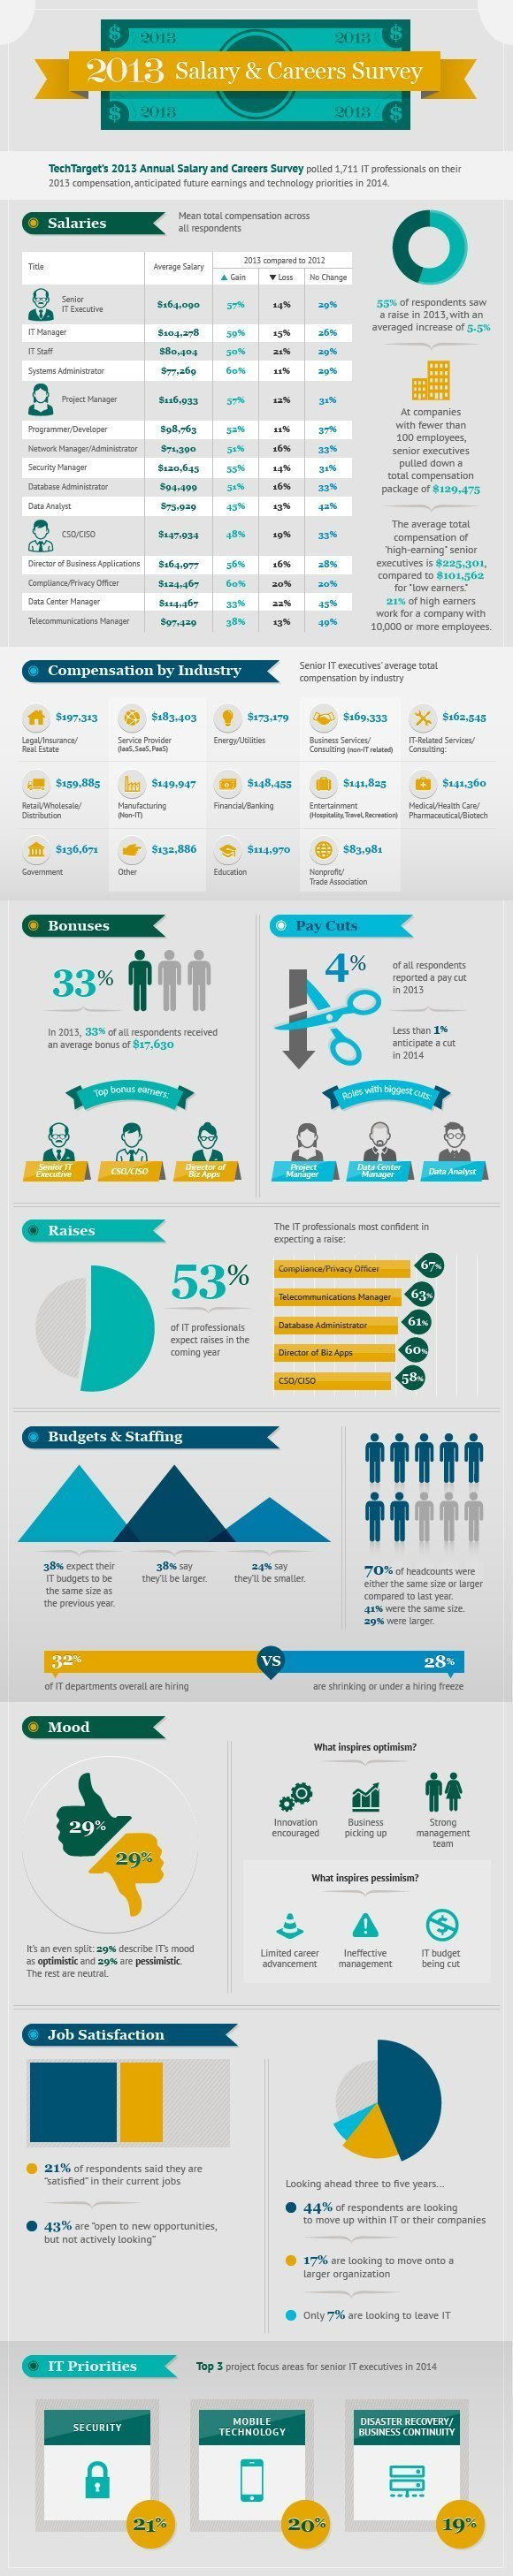 CIO IT salary infographic